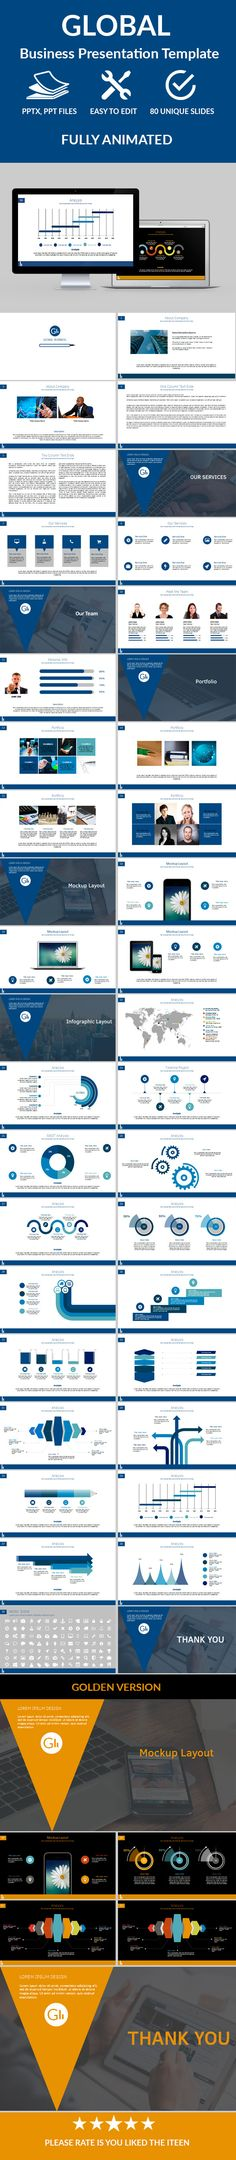 Global Business Powerpoint Presentation Template #design #slides Download: http://graphicriver.net/item/global-business-powerpoint-presentation/12249661?ref=ksioks